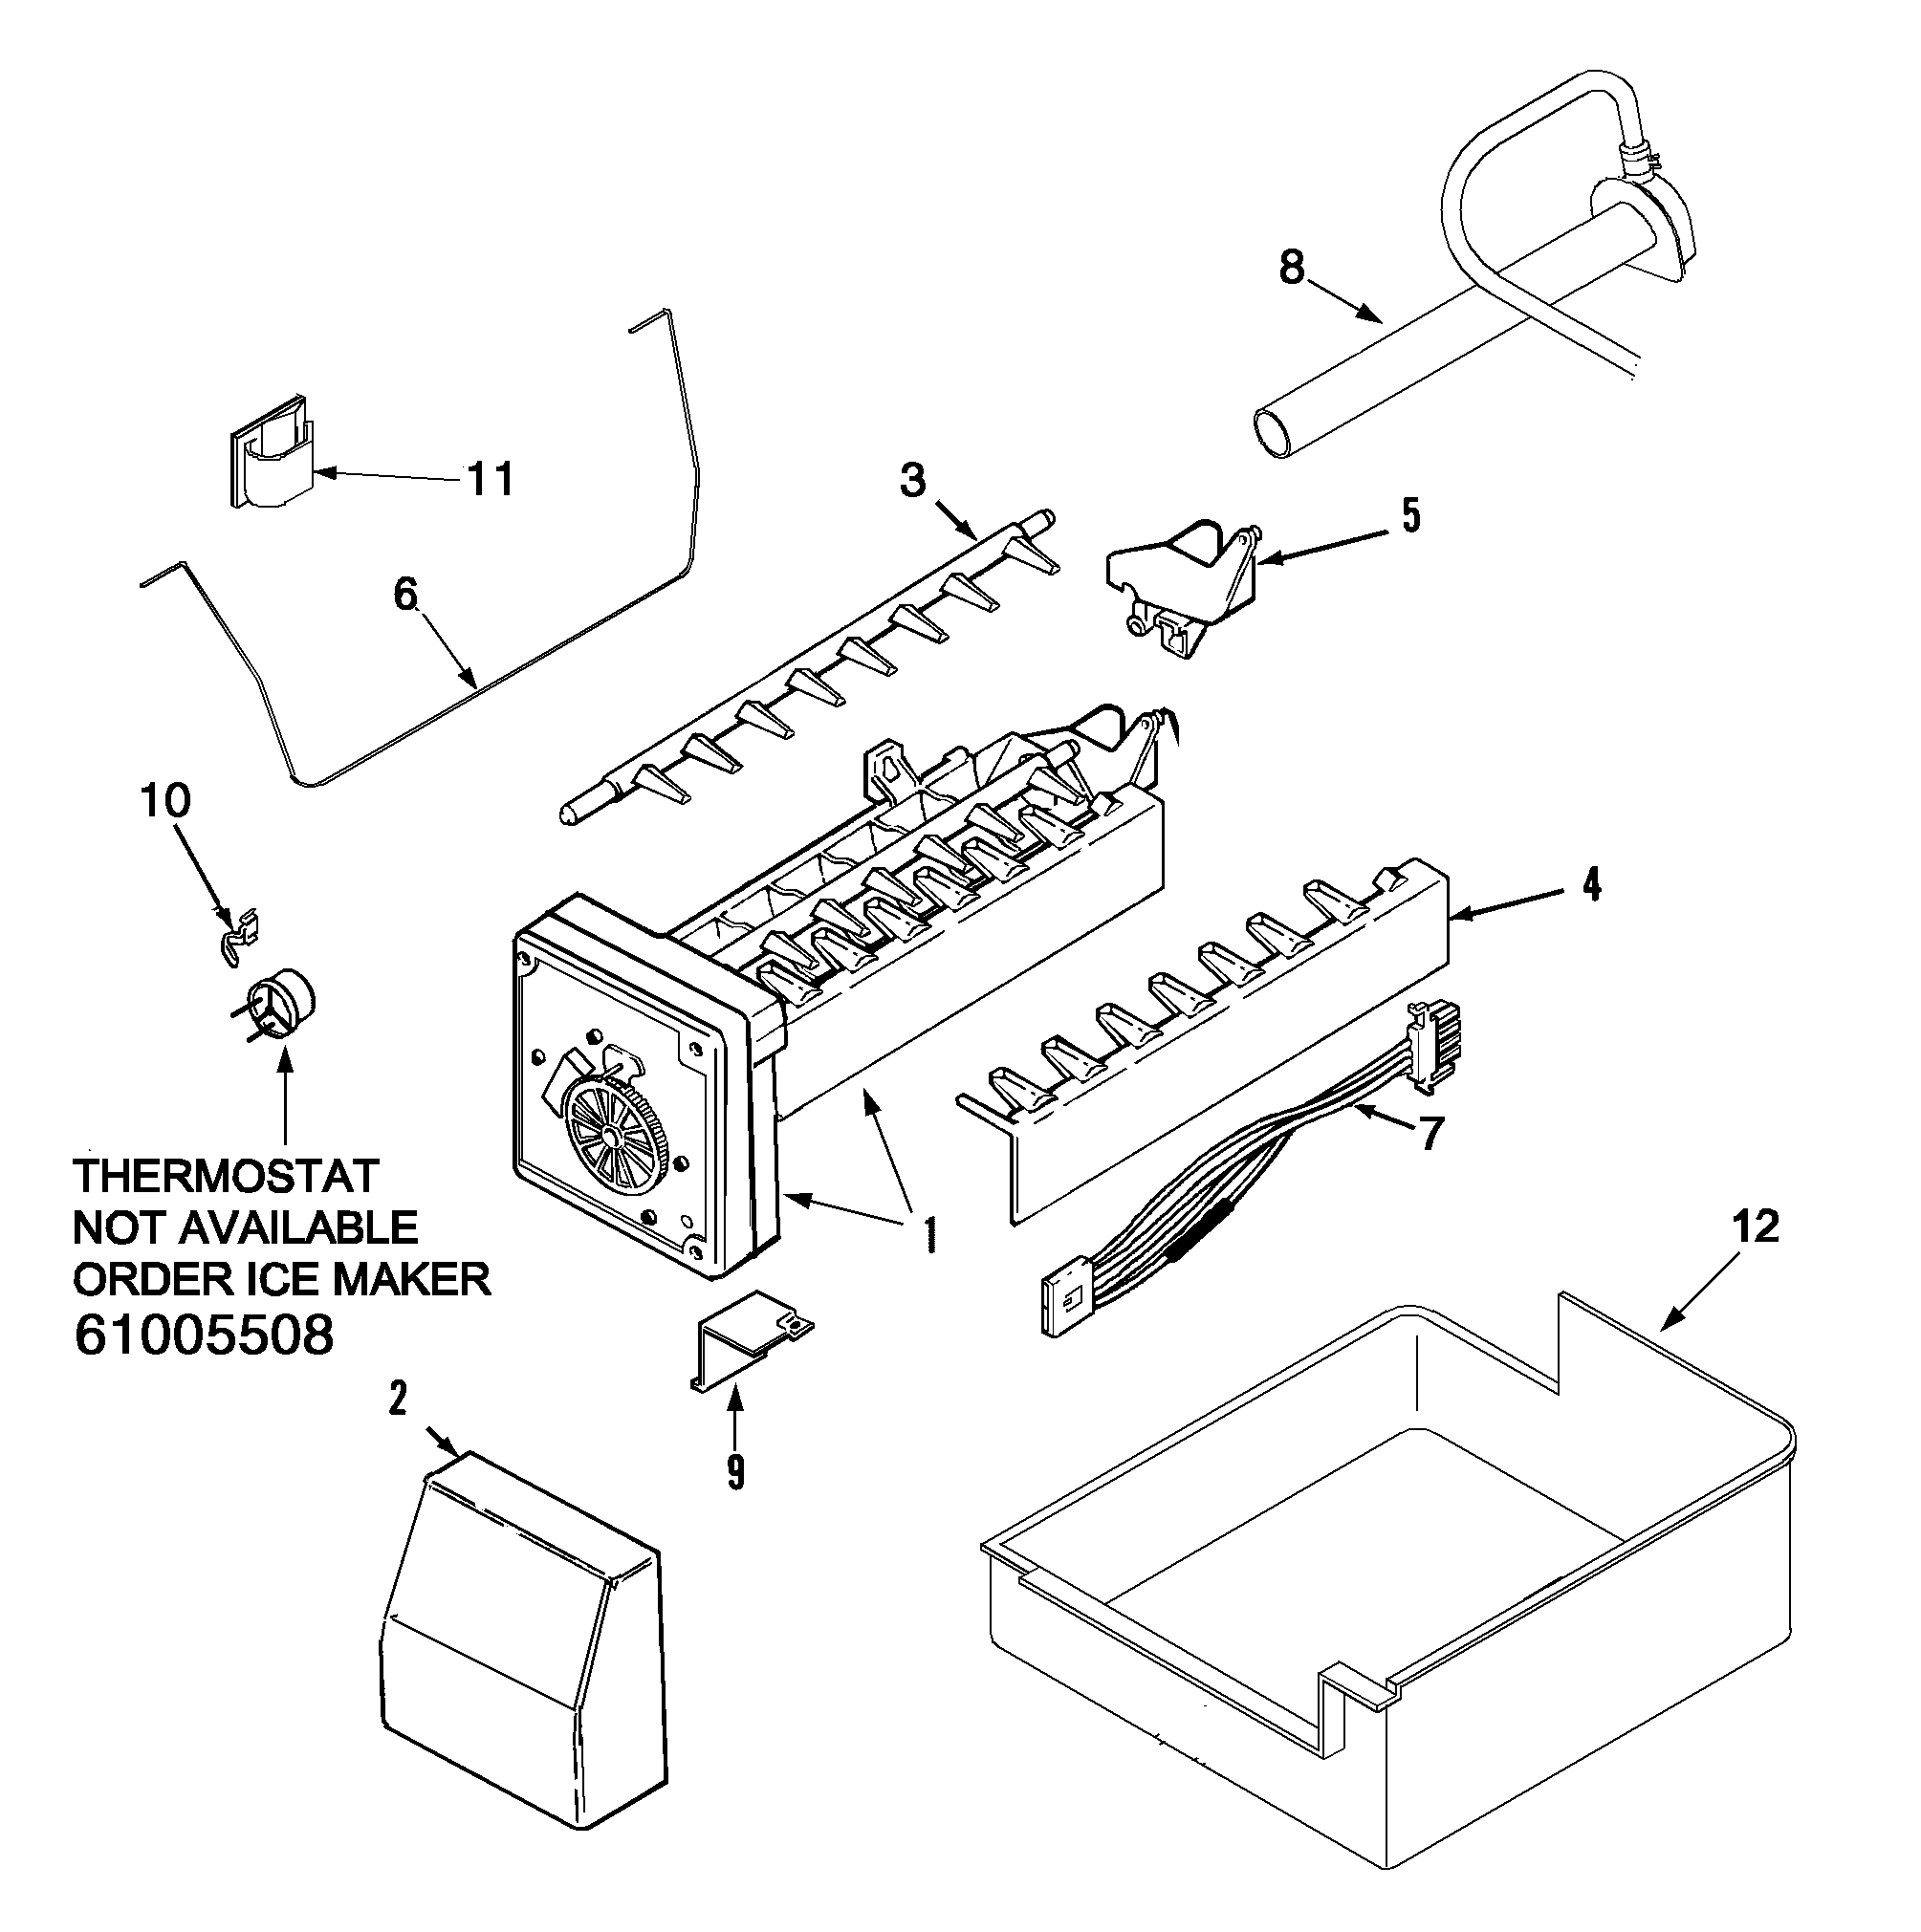 small resolution of ice maker dispenser diagram and parts list for electroluxice maker dispenser diagram and parts list for